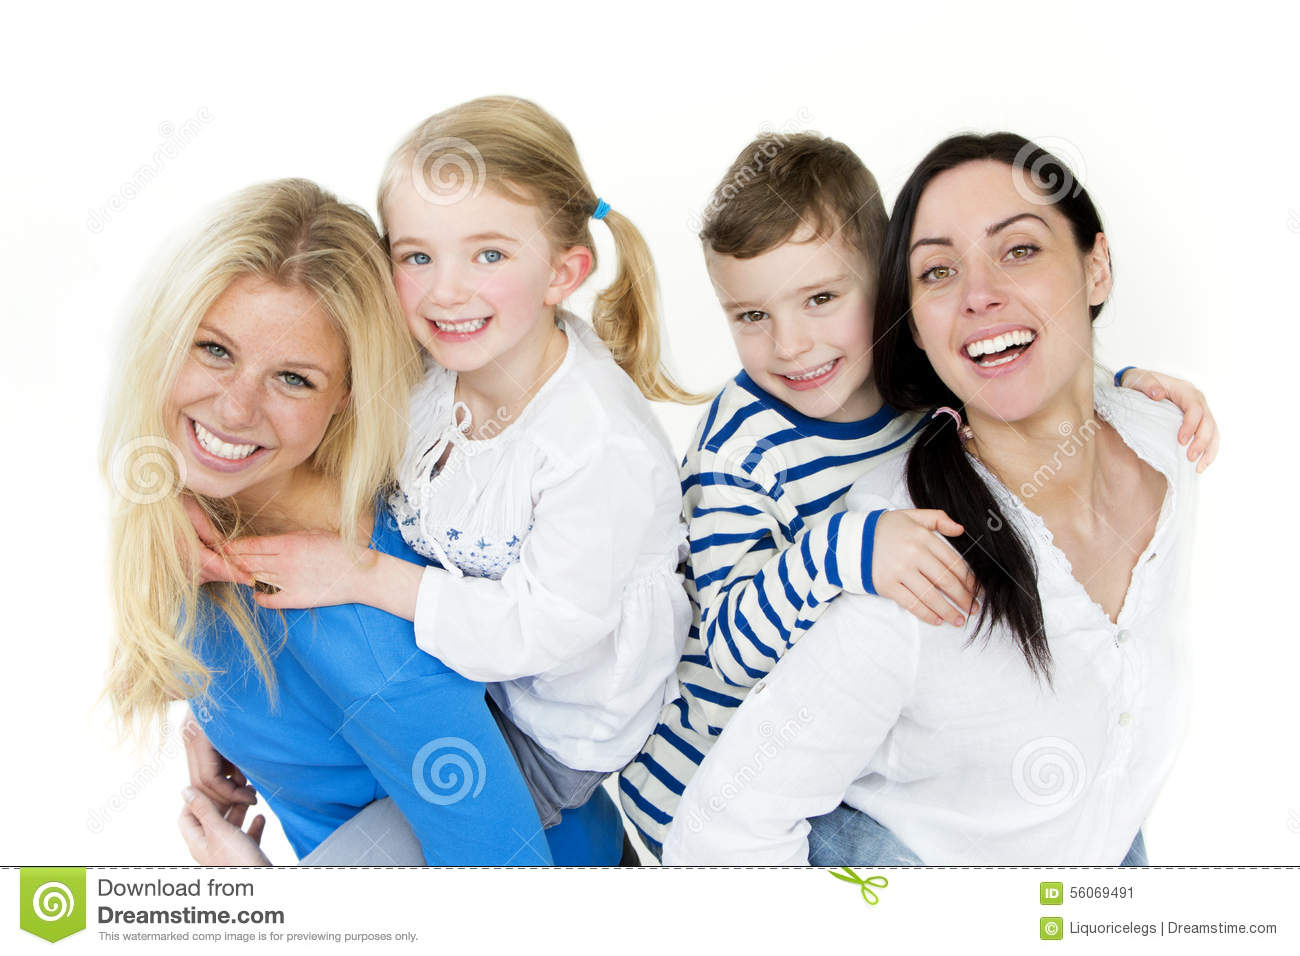 Same sex couple with children